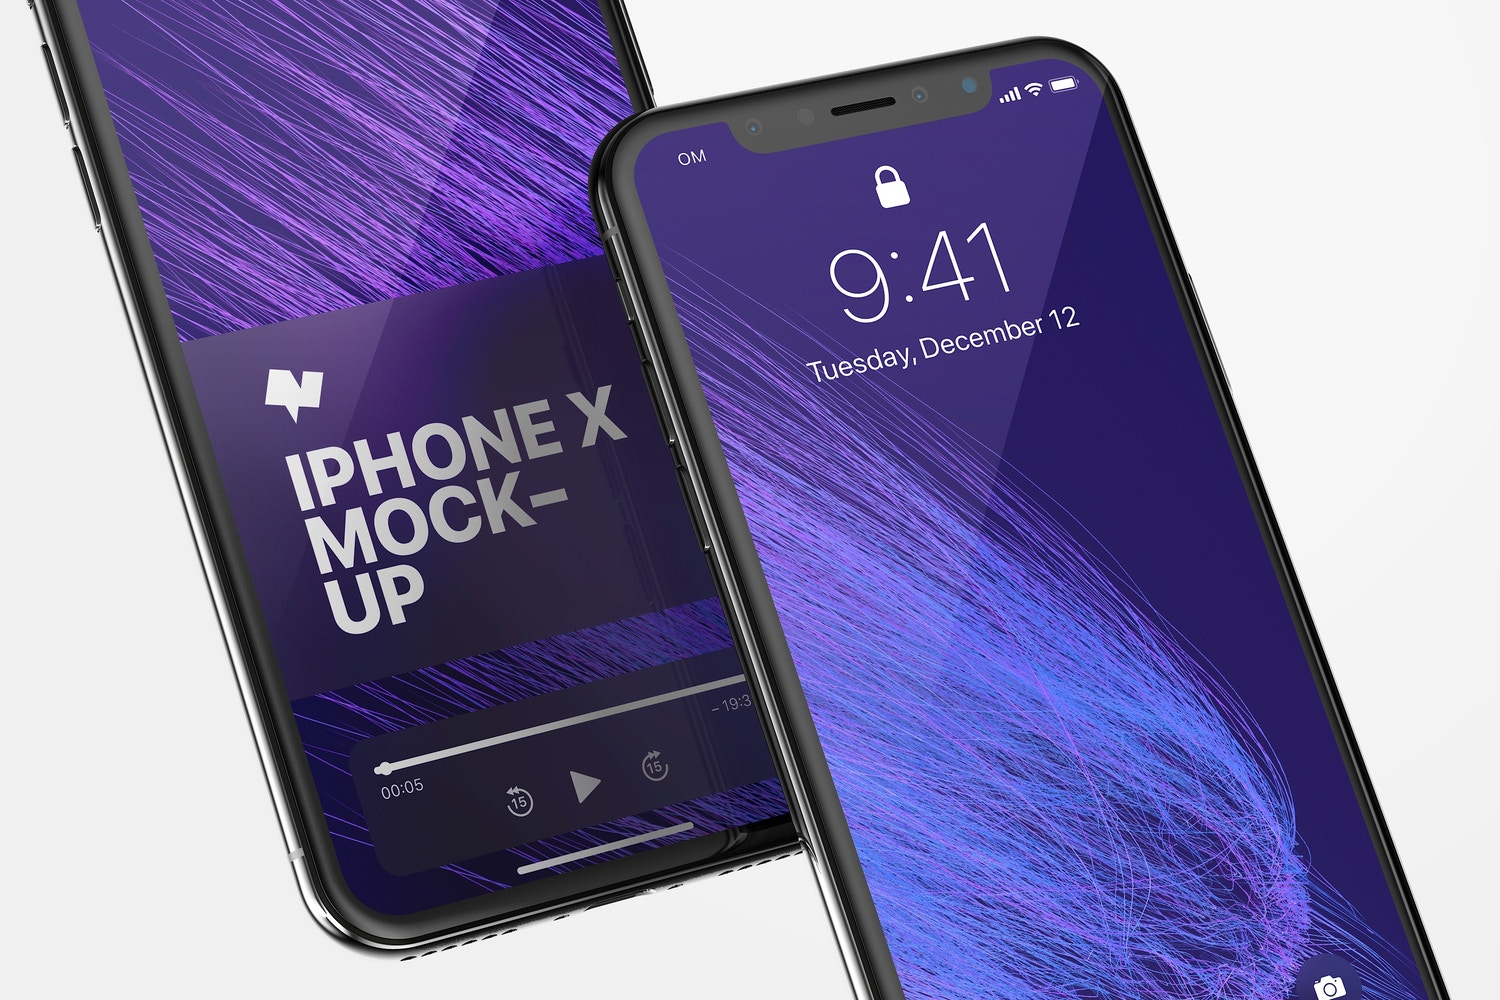 iPhone X Mockup 01 by Original Mockups on Original Mockups